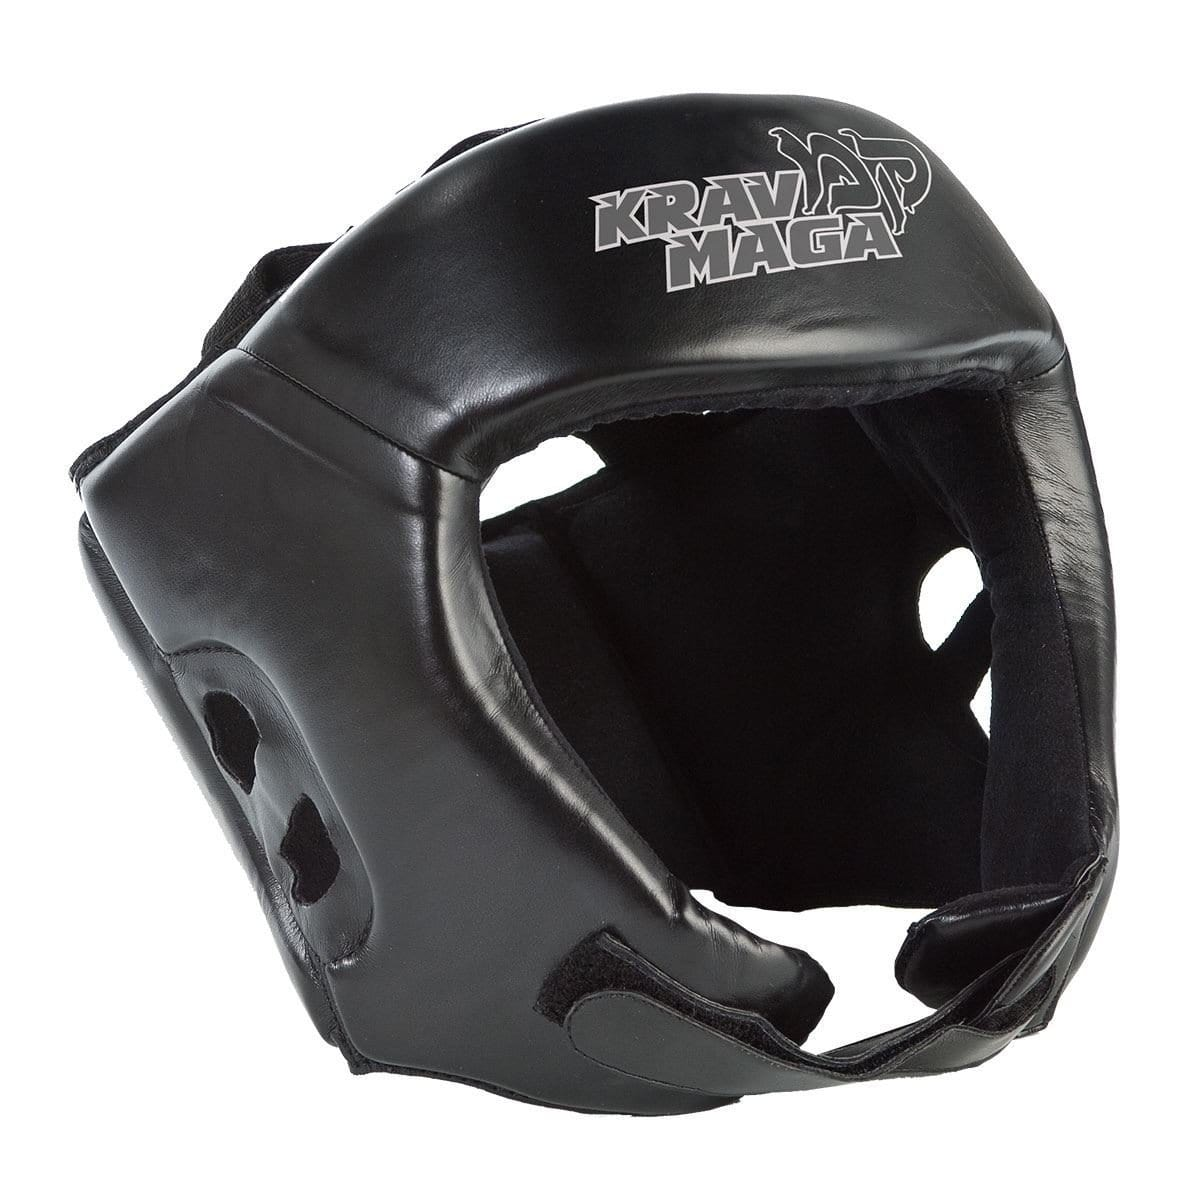 Krav Maga Headgear